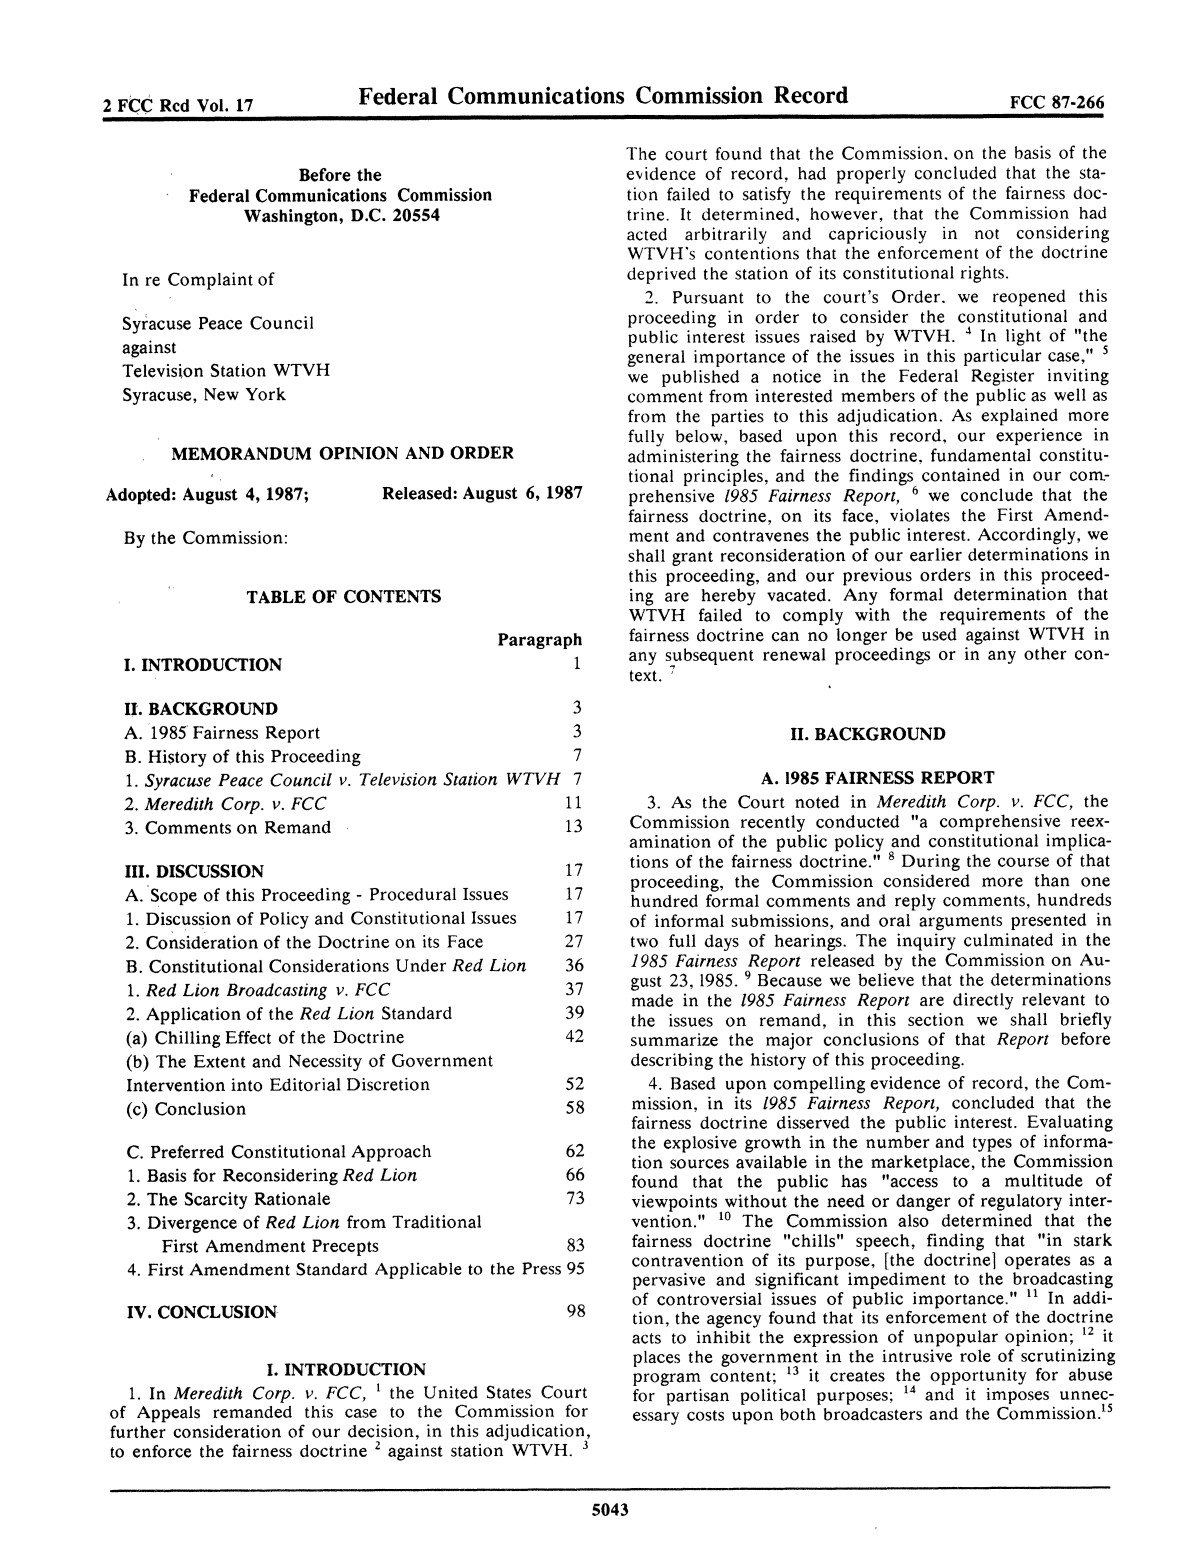 FCC Record, Volume 2, No. 17, Pages 5002 to 5398, August 17 - August 28, 1987                                                                                                      5043